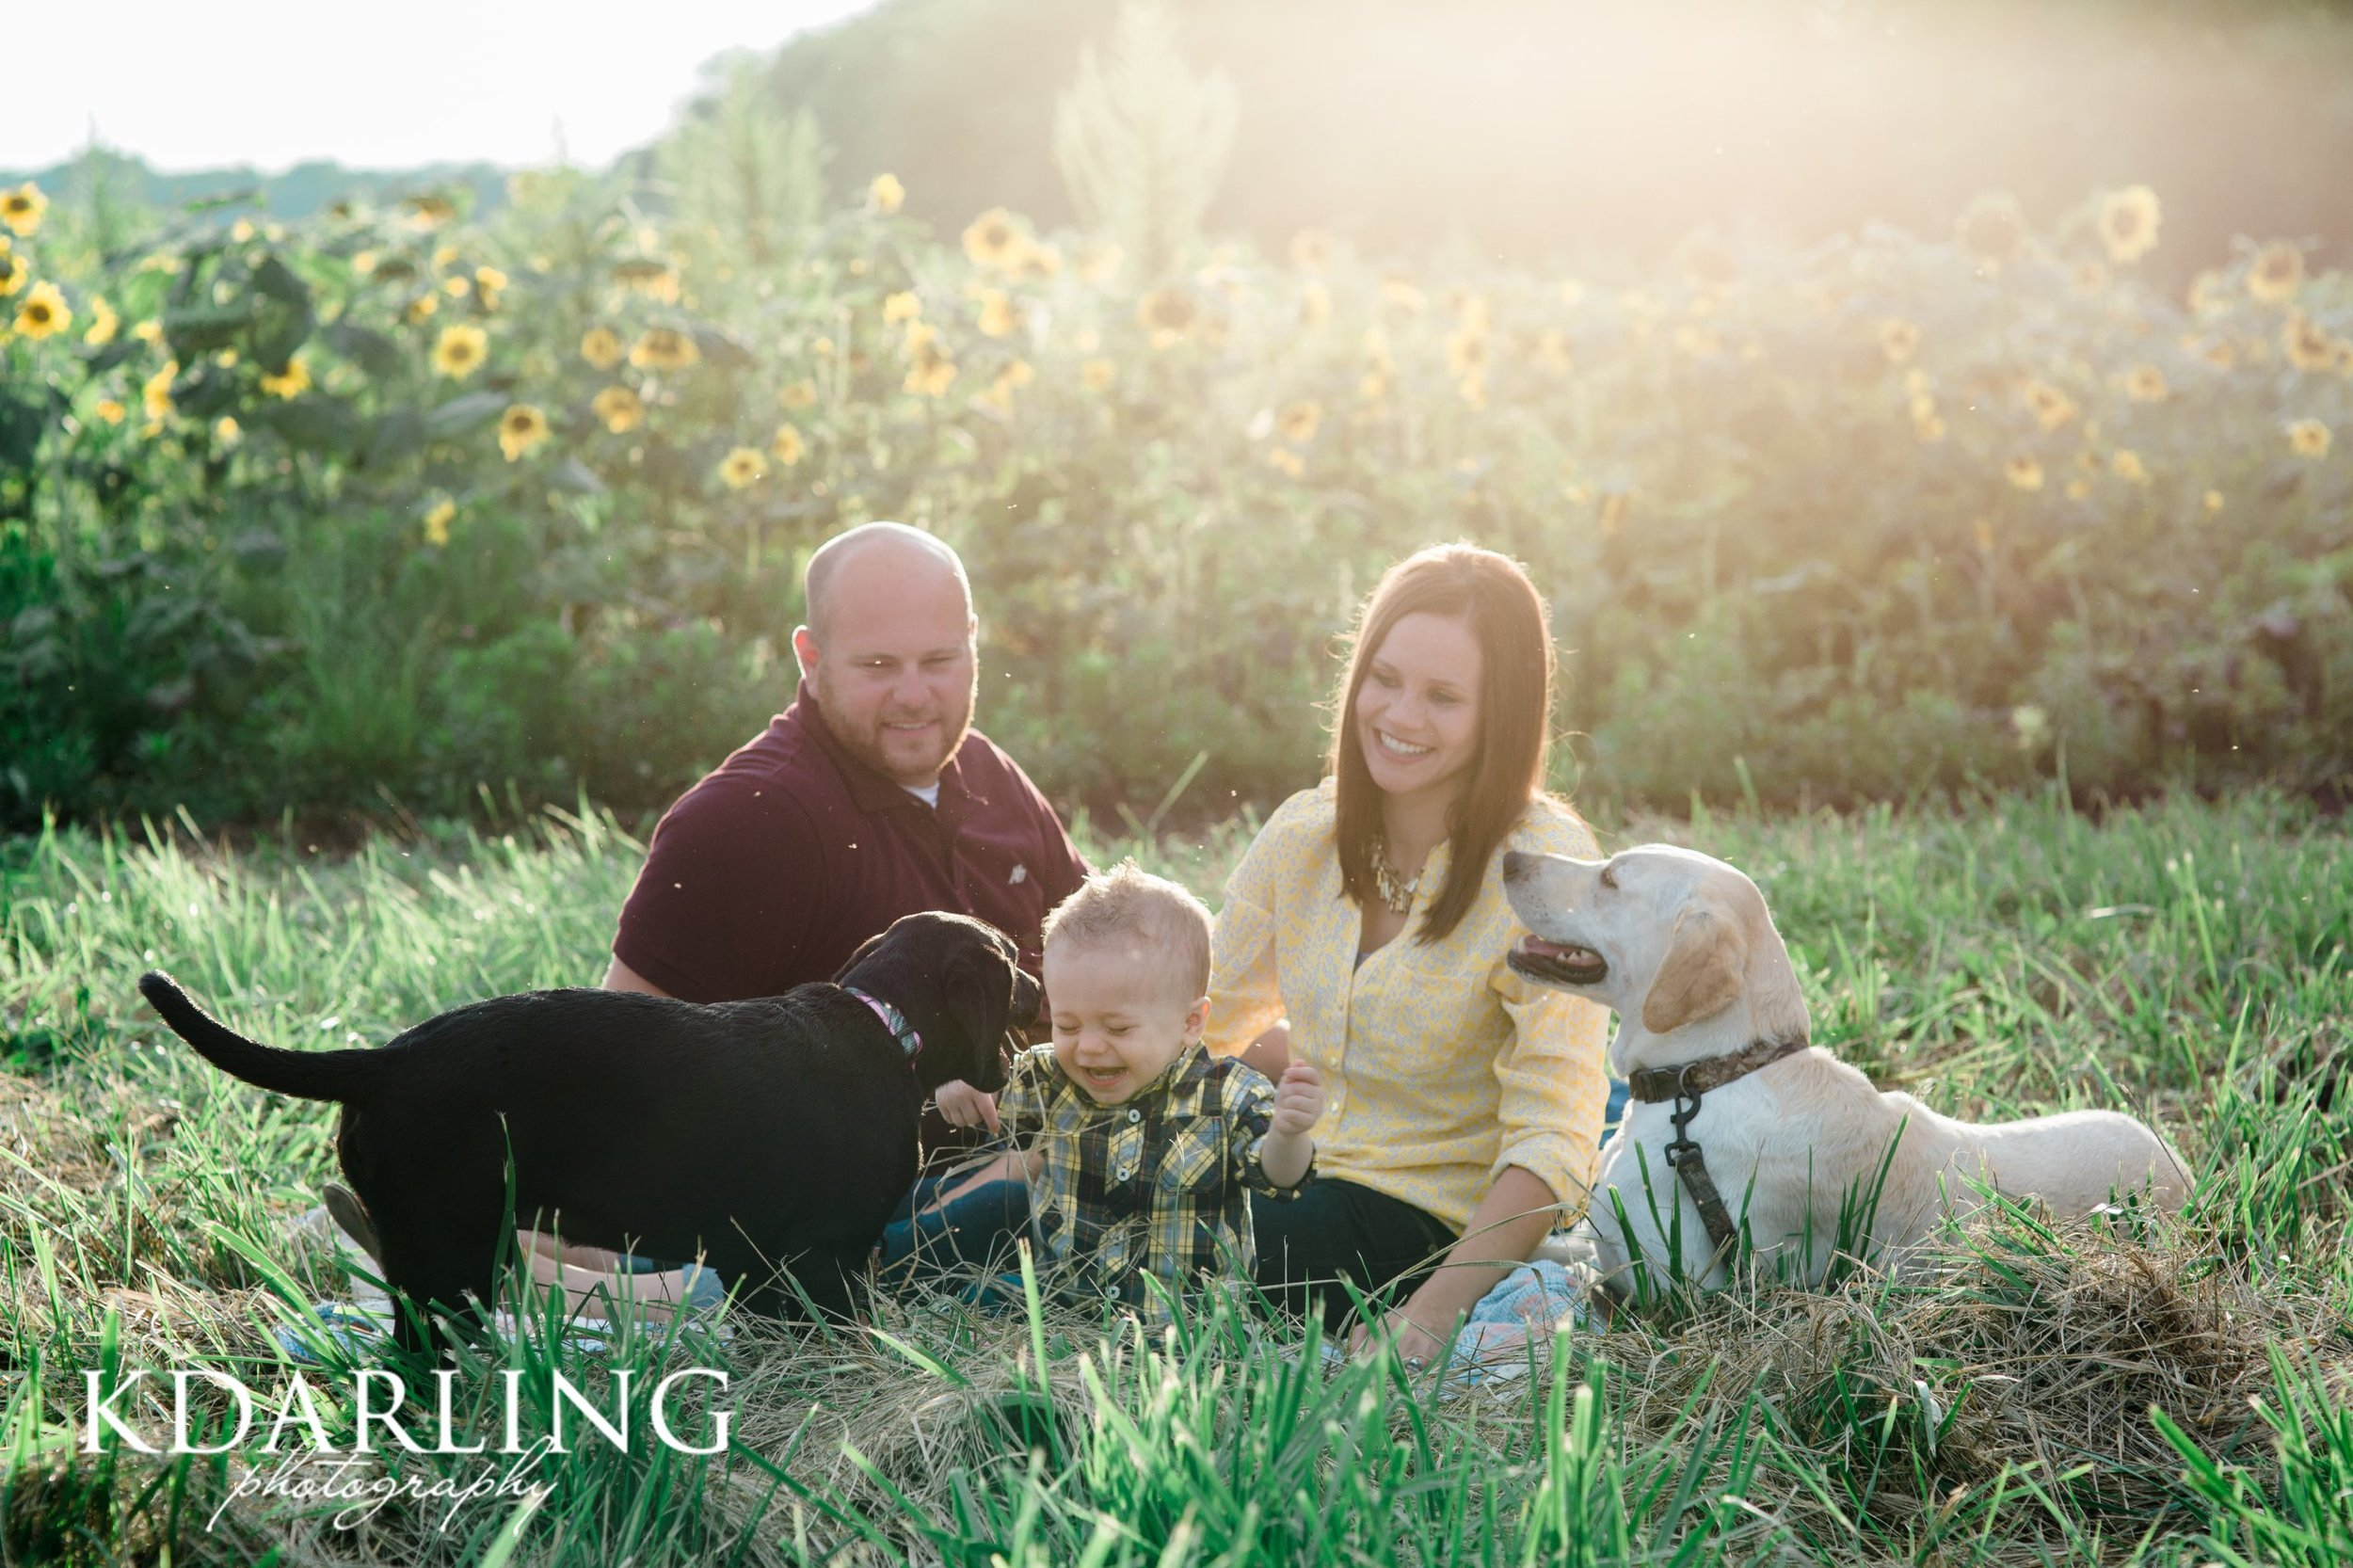 family of 3 with 2 dogs and sunflowers